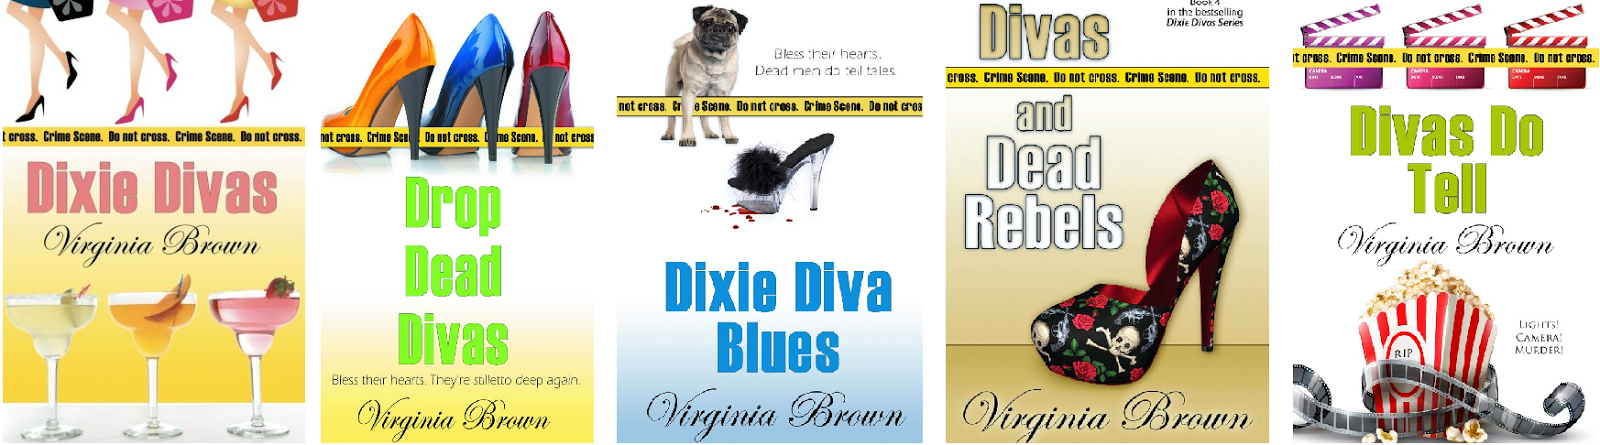 Check out the Depot Diva characters in mystery book form!